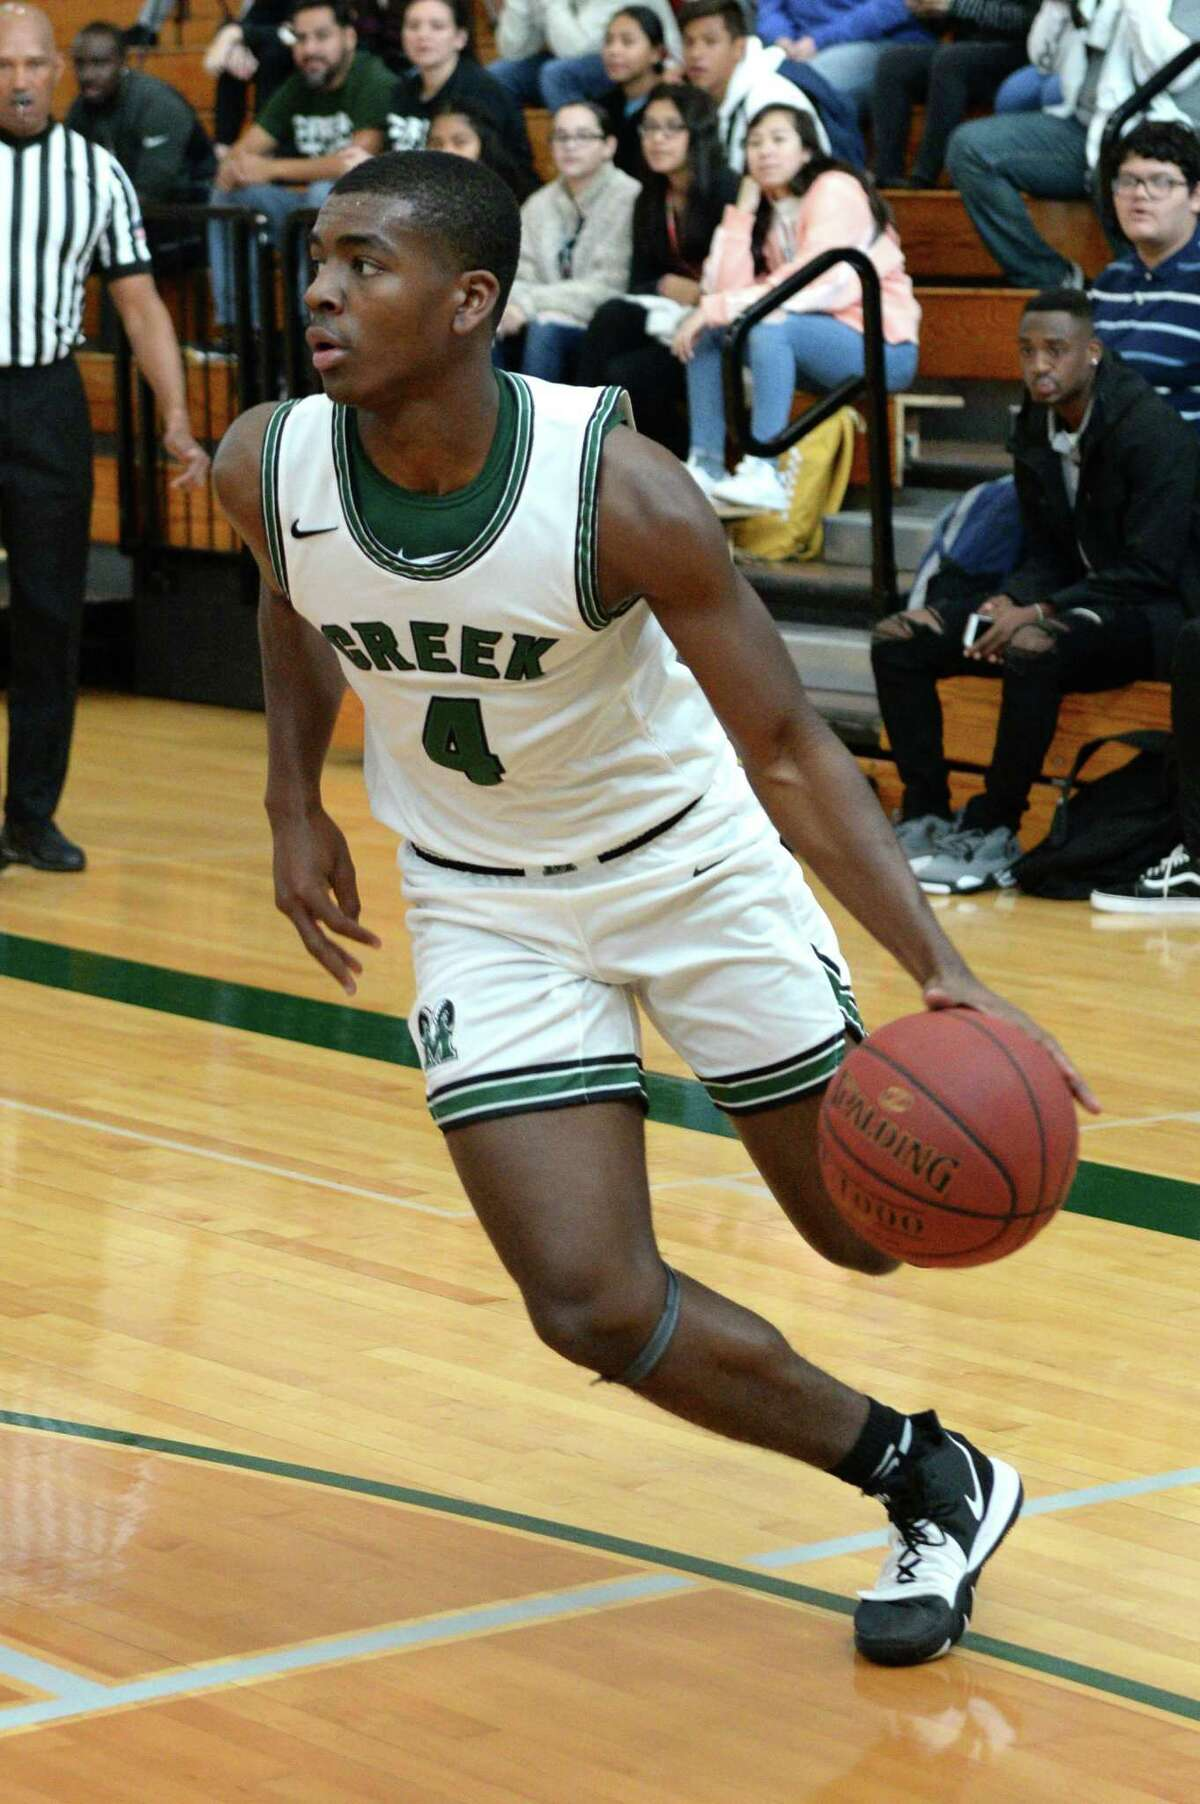 Rommell Williams (4) of Mayde Creek drives toward the paint during pool play of the Katy Classic Basketball Tournament between the Mayde Creek Rams and the Tomball Cougars on Thursday, December 5, 2019 at Mayde Creek HS, Houston, TX.